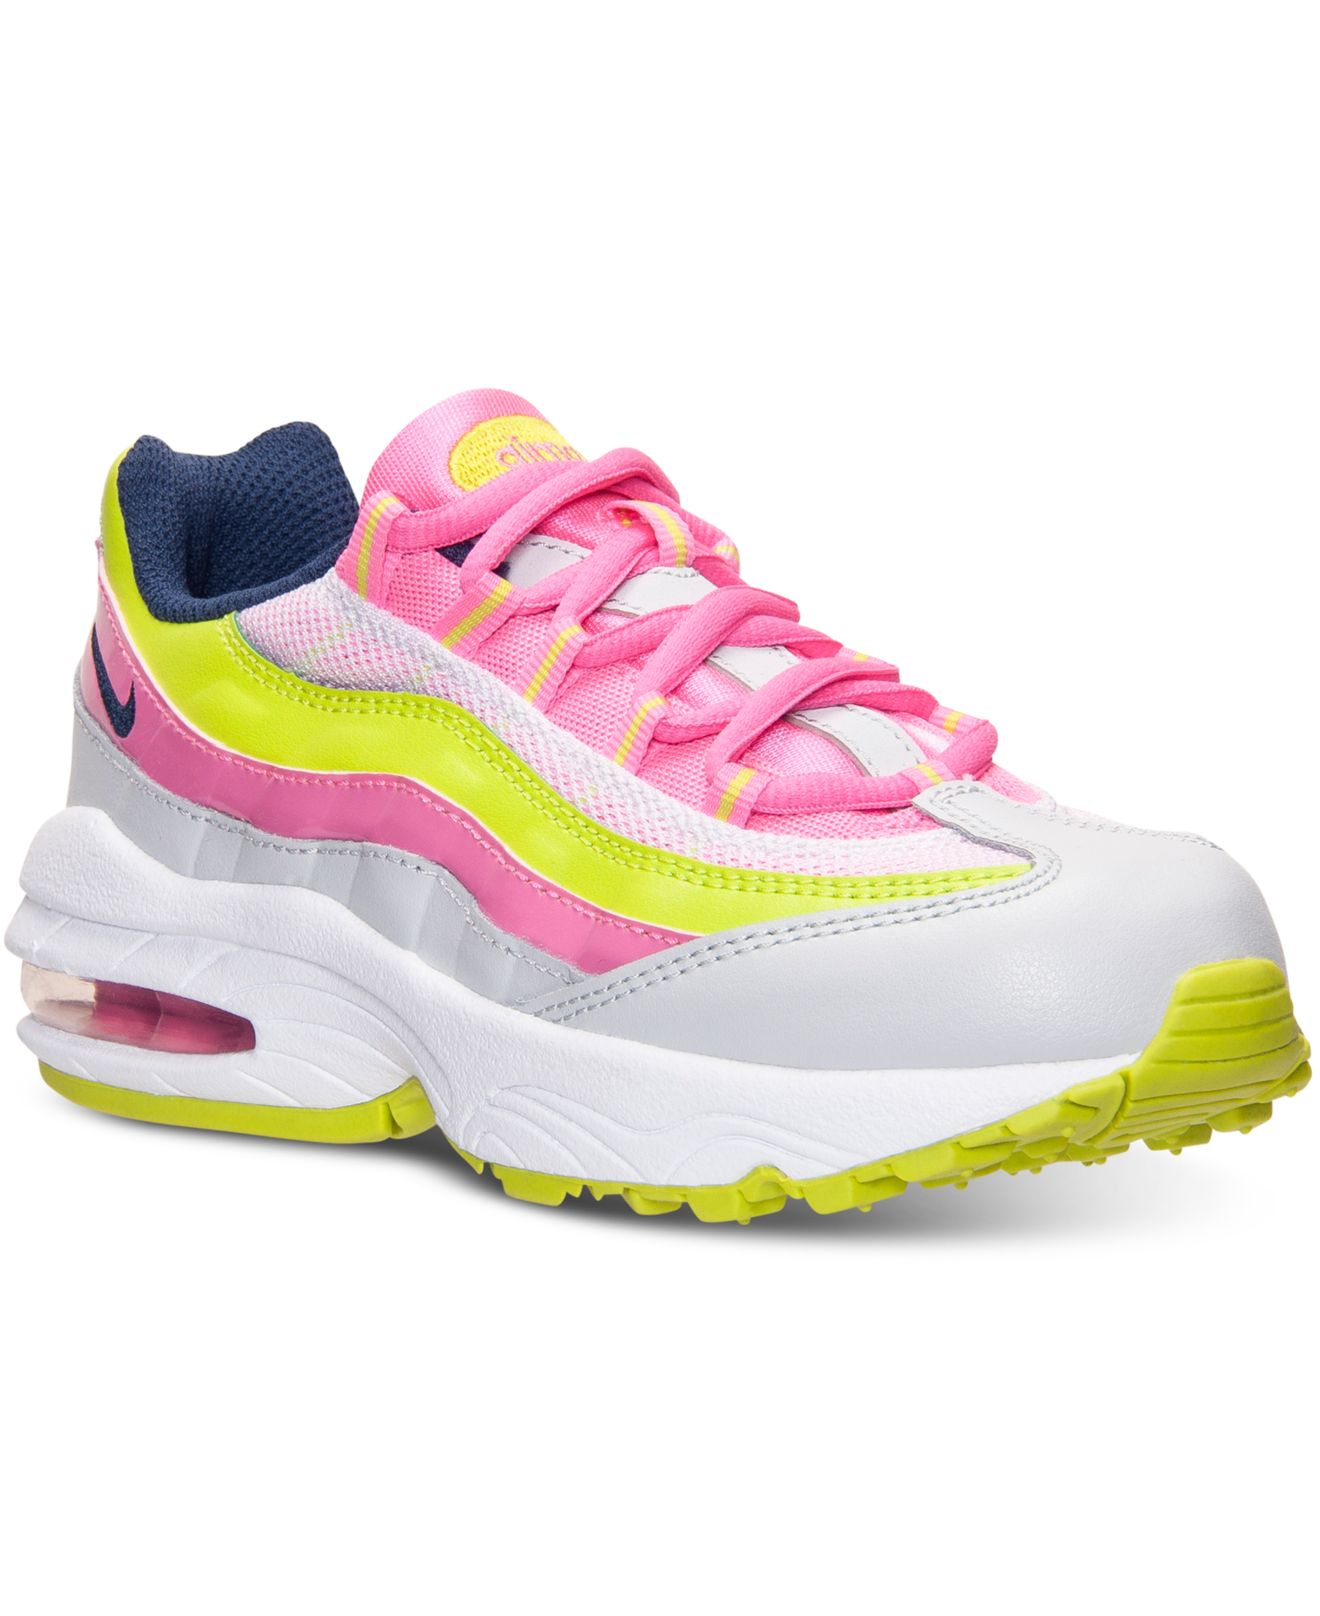 pretty nice c311a a2bae Women's Pink Little Girls' Air Max 95 Running Sneakers From Finish Line